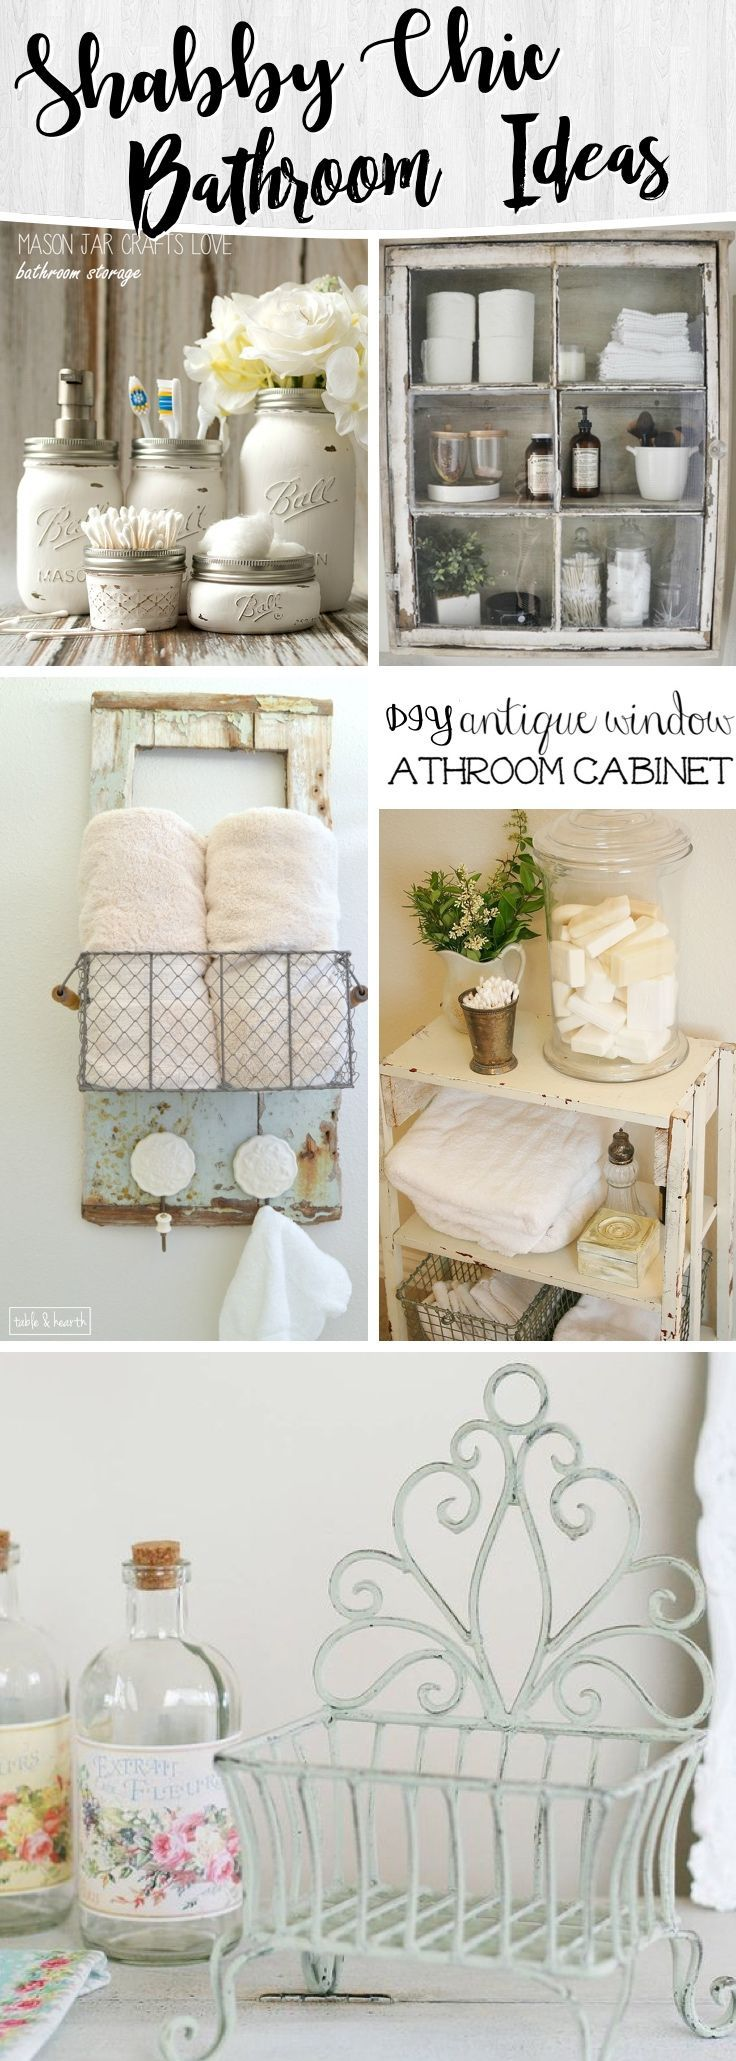 15 Shabby Chic Bathroom Ideas Transforming Your Space From Simple to ...